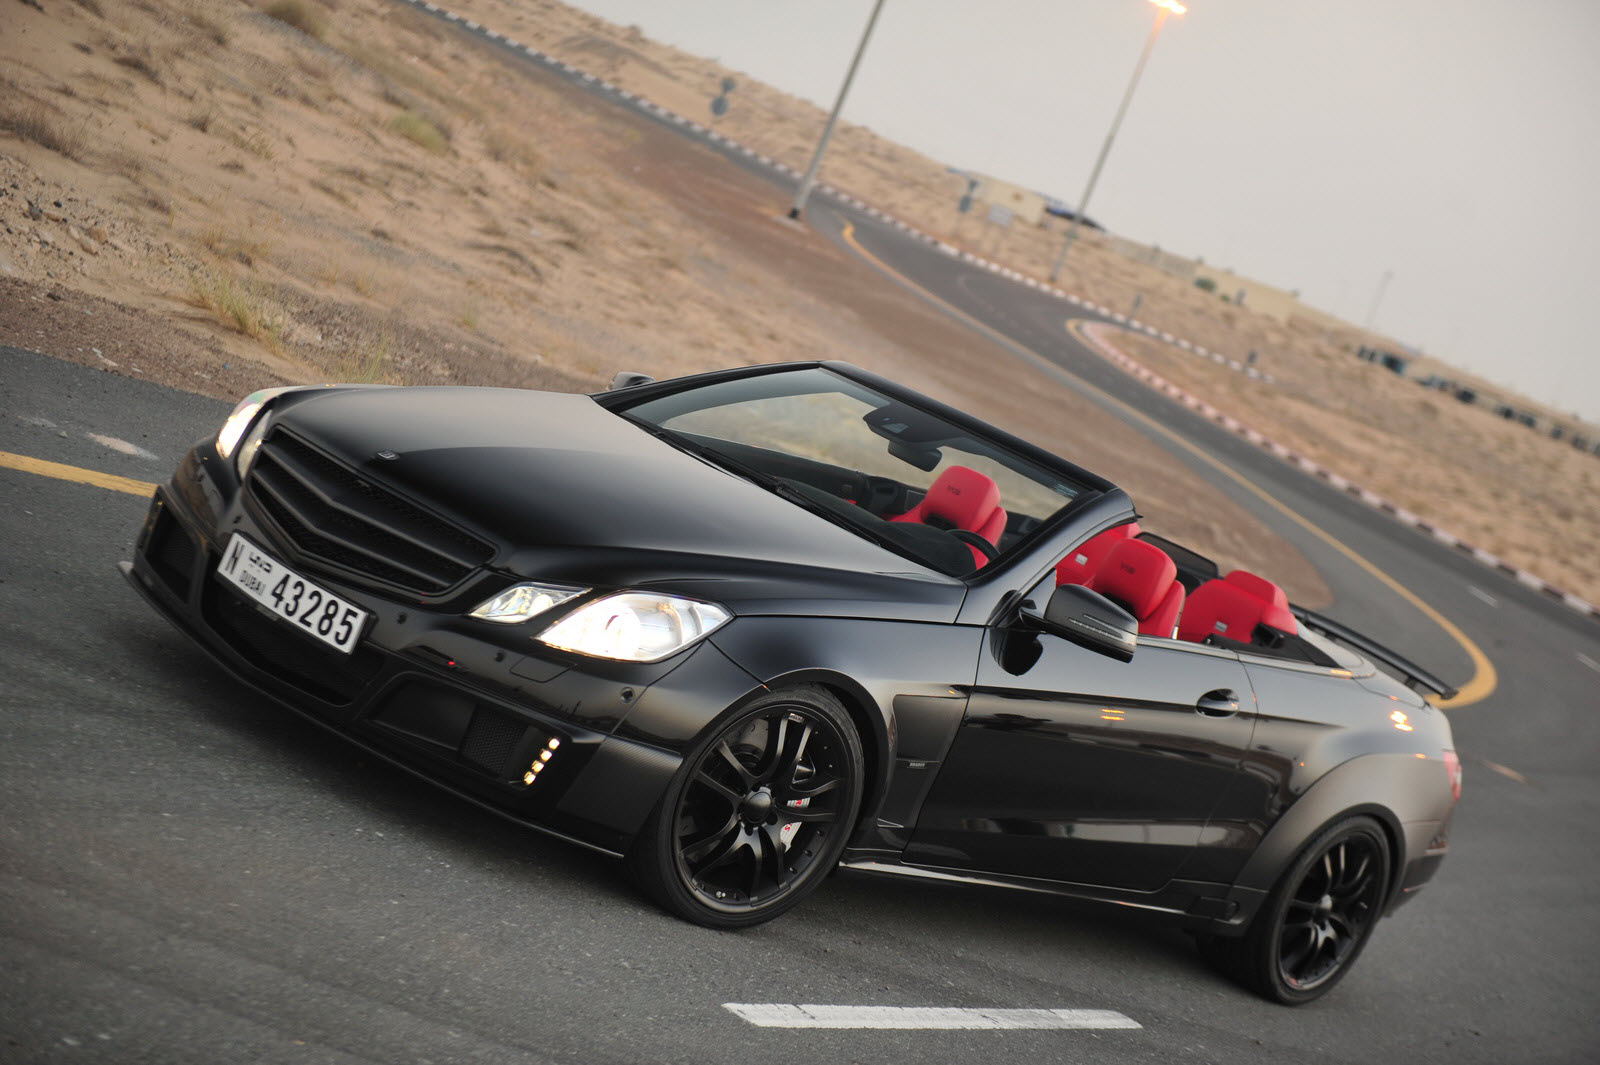 brabus 800 e v12 cabriolet the world s most powerful and. Black Bedroom Furniture Sets. Home Design Ideas